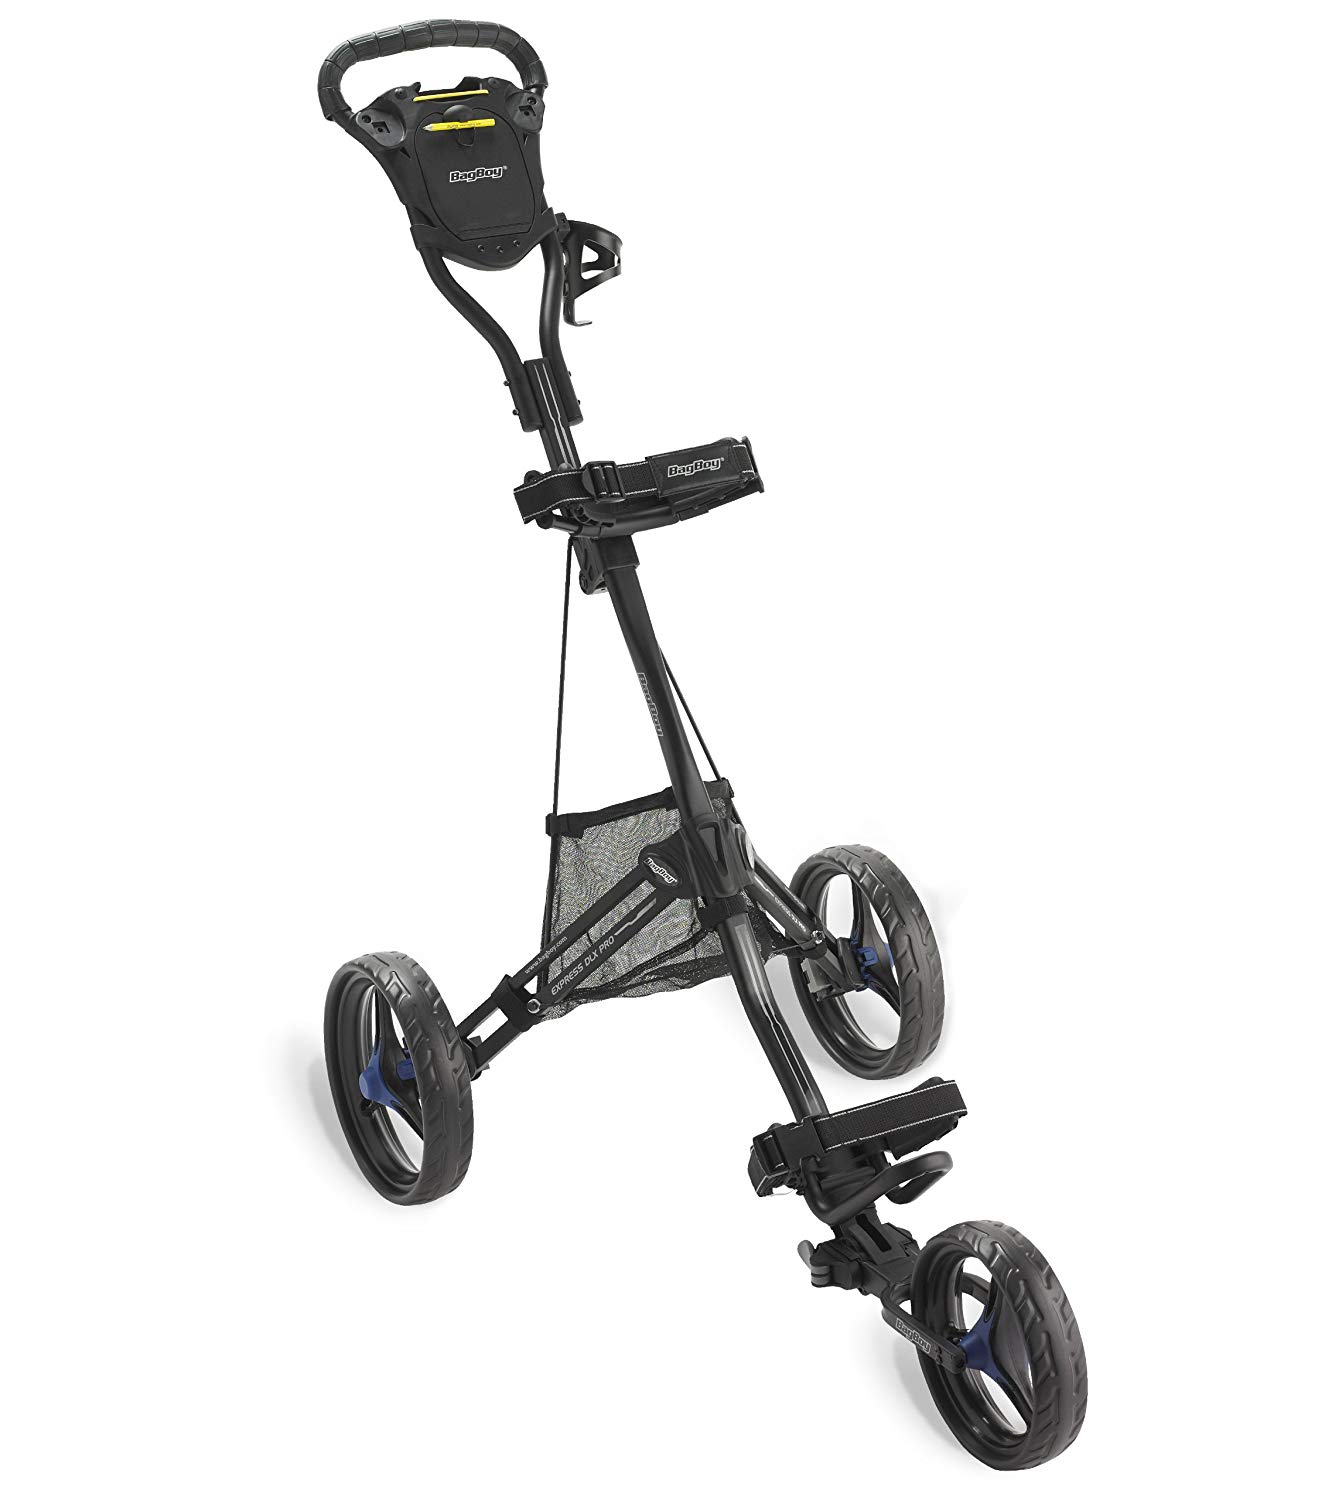 10 Best Golf Push Carts Review No 1 Is Amazing Honest Golfers